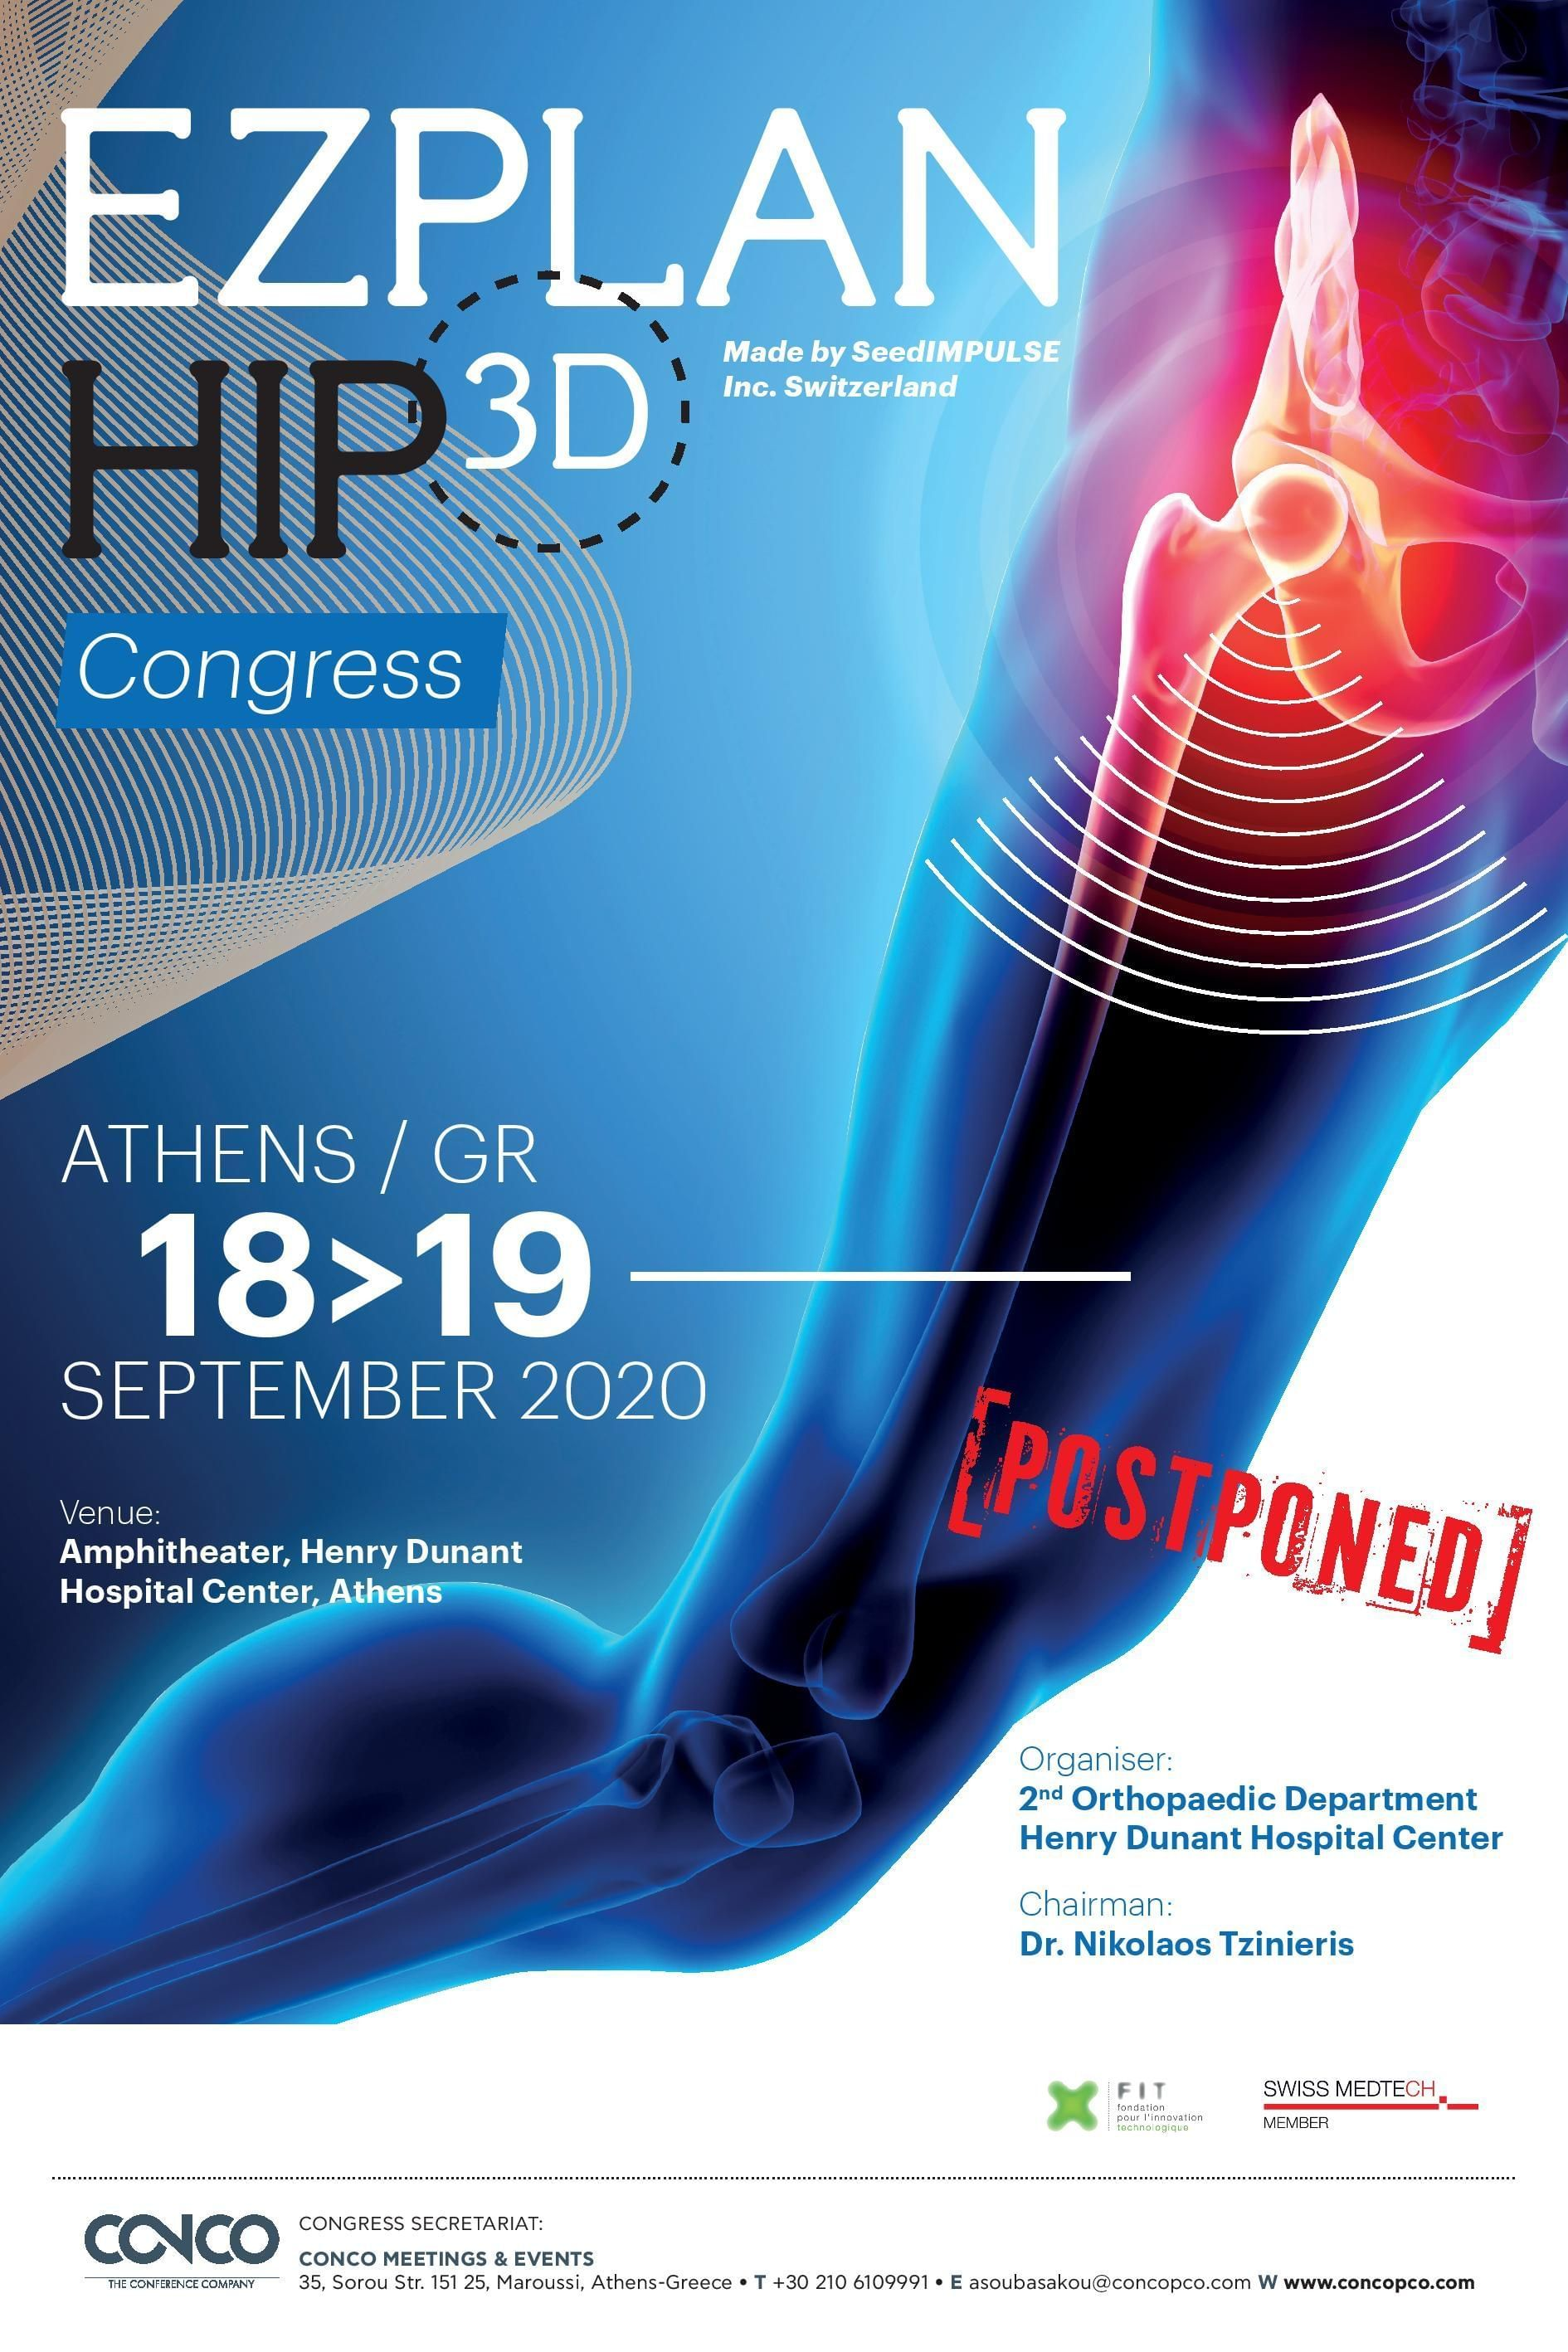 EZPLAN HIP 3D CONGRESS